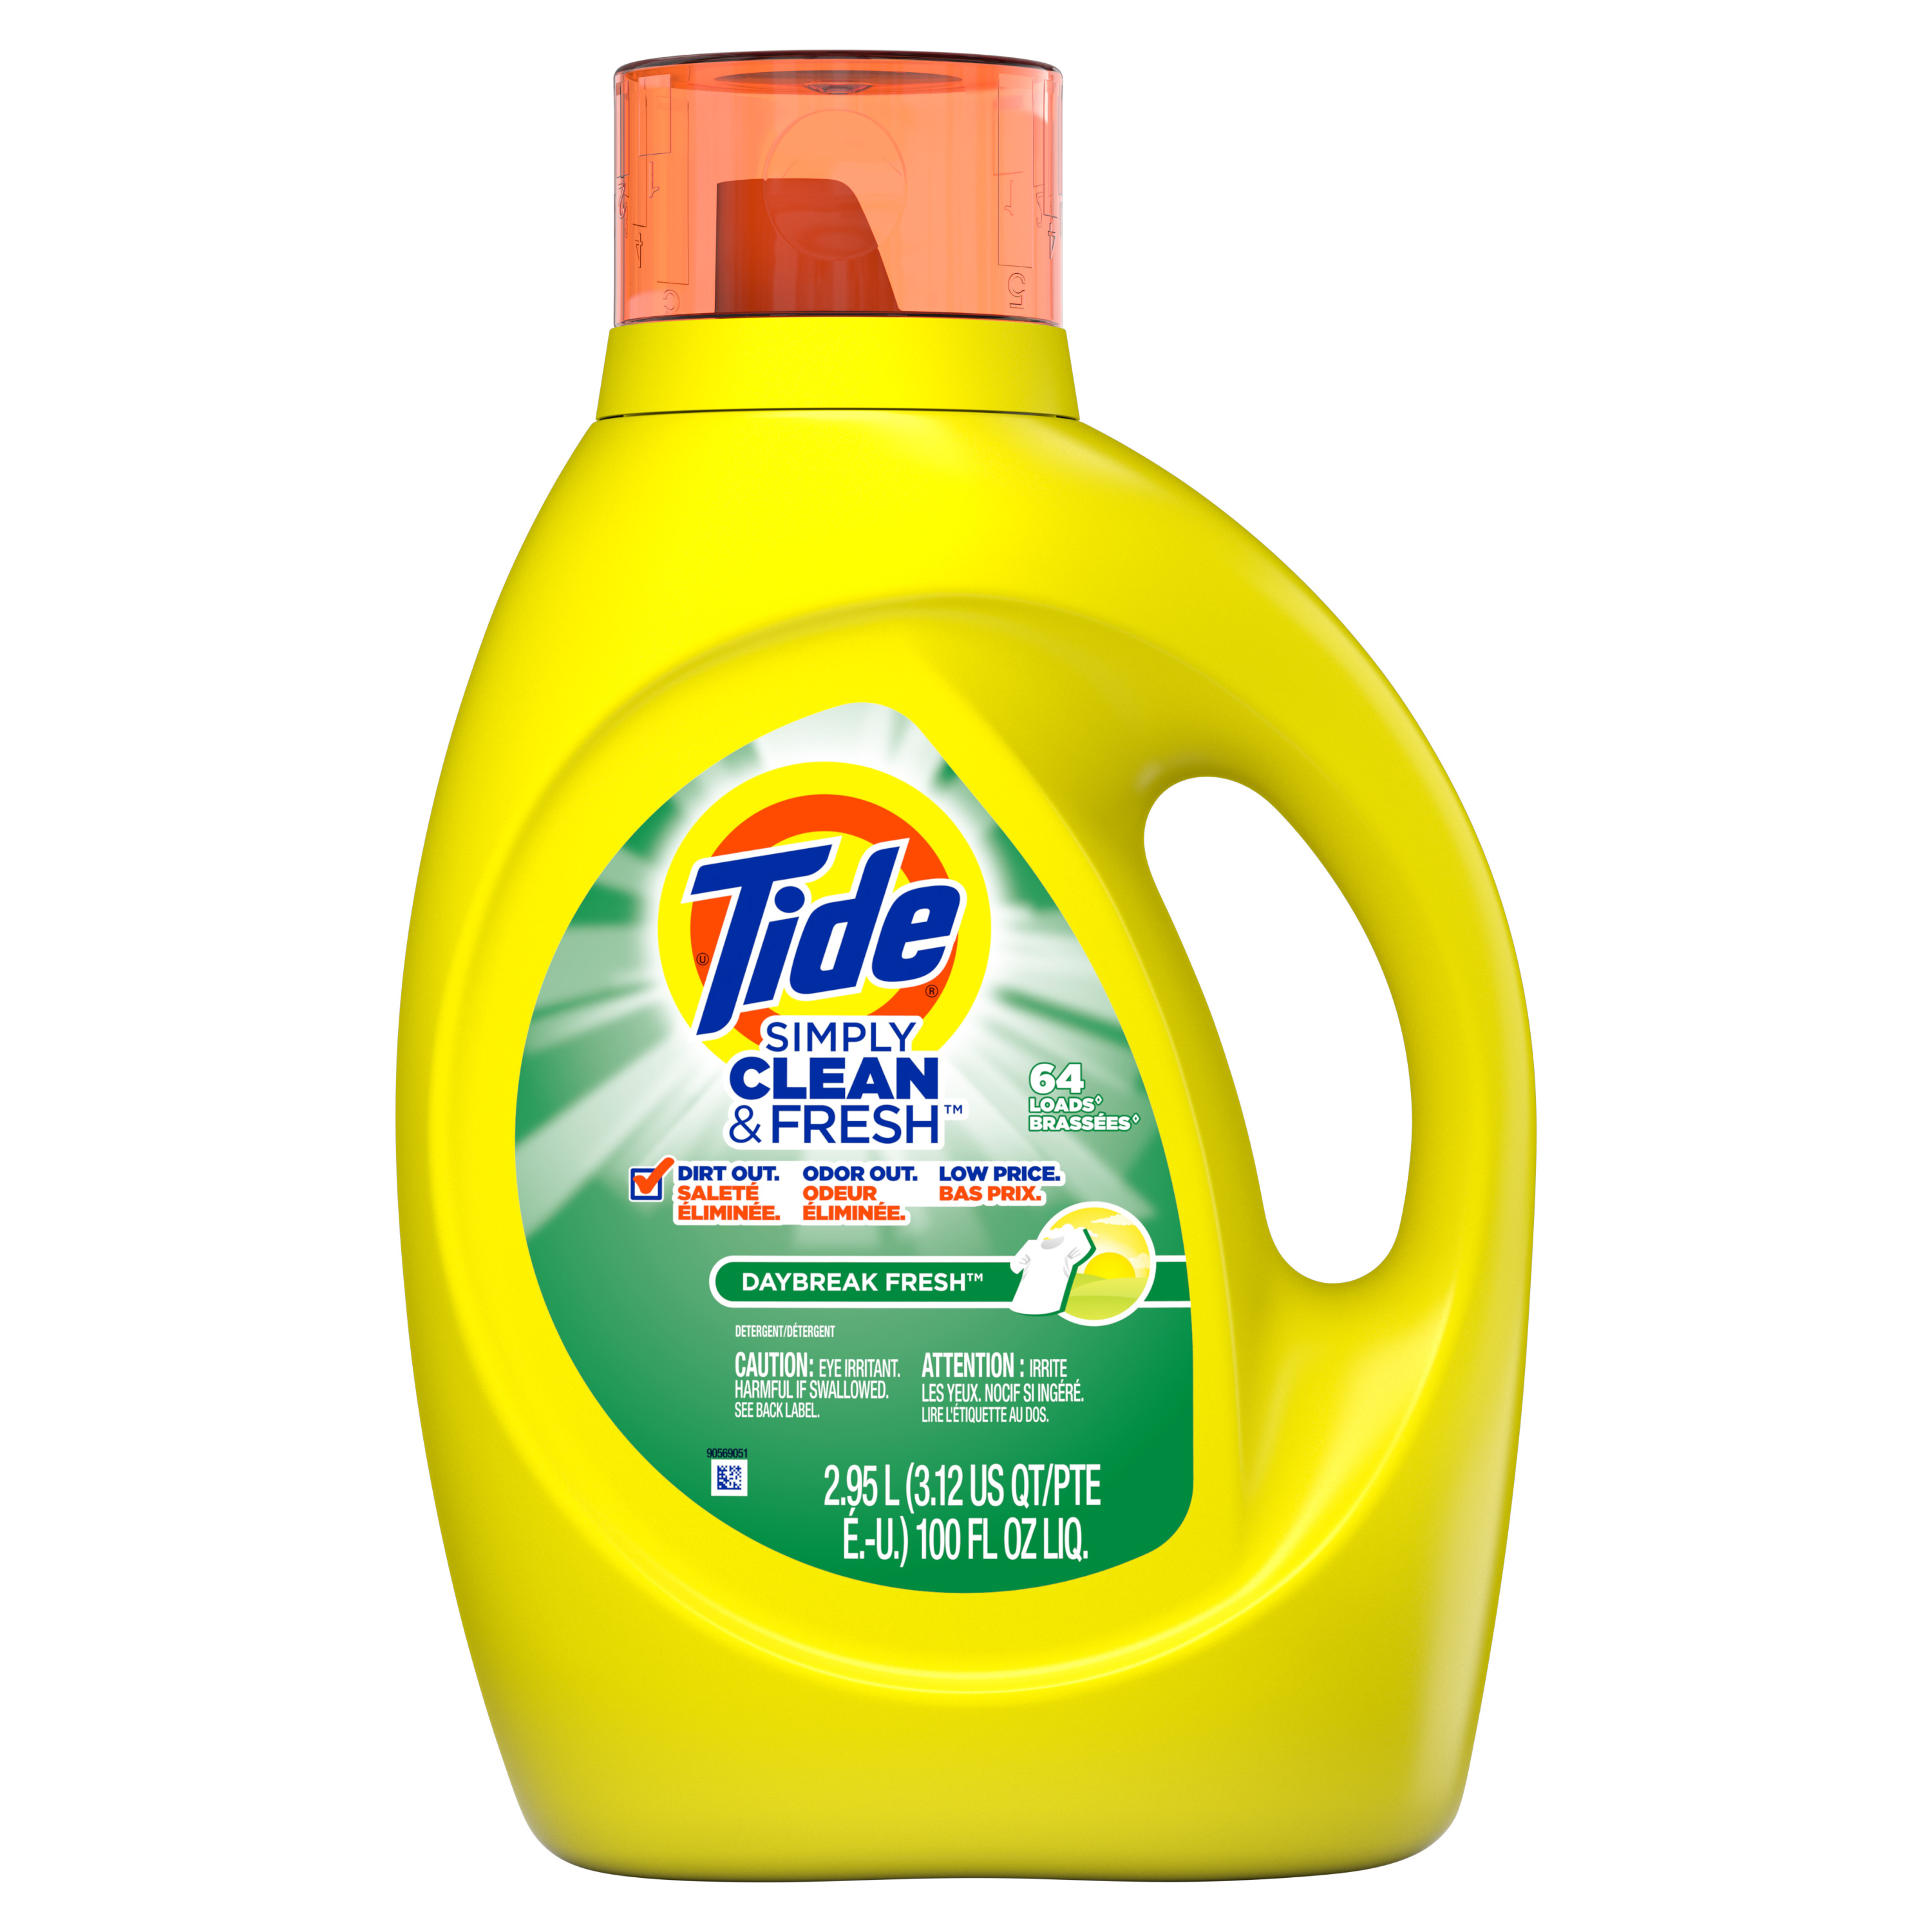 Tide Simply Clean & Fresh HE Liquid Laundry Detergent, Daybreak Fresh Scent, 64 Loads 100 Oz